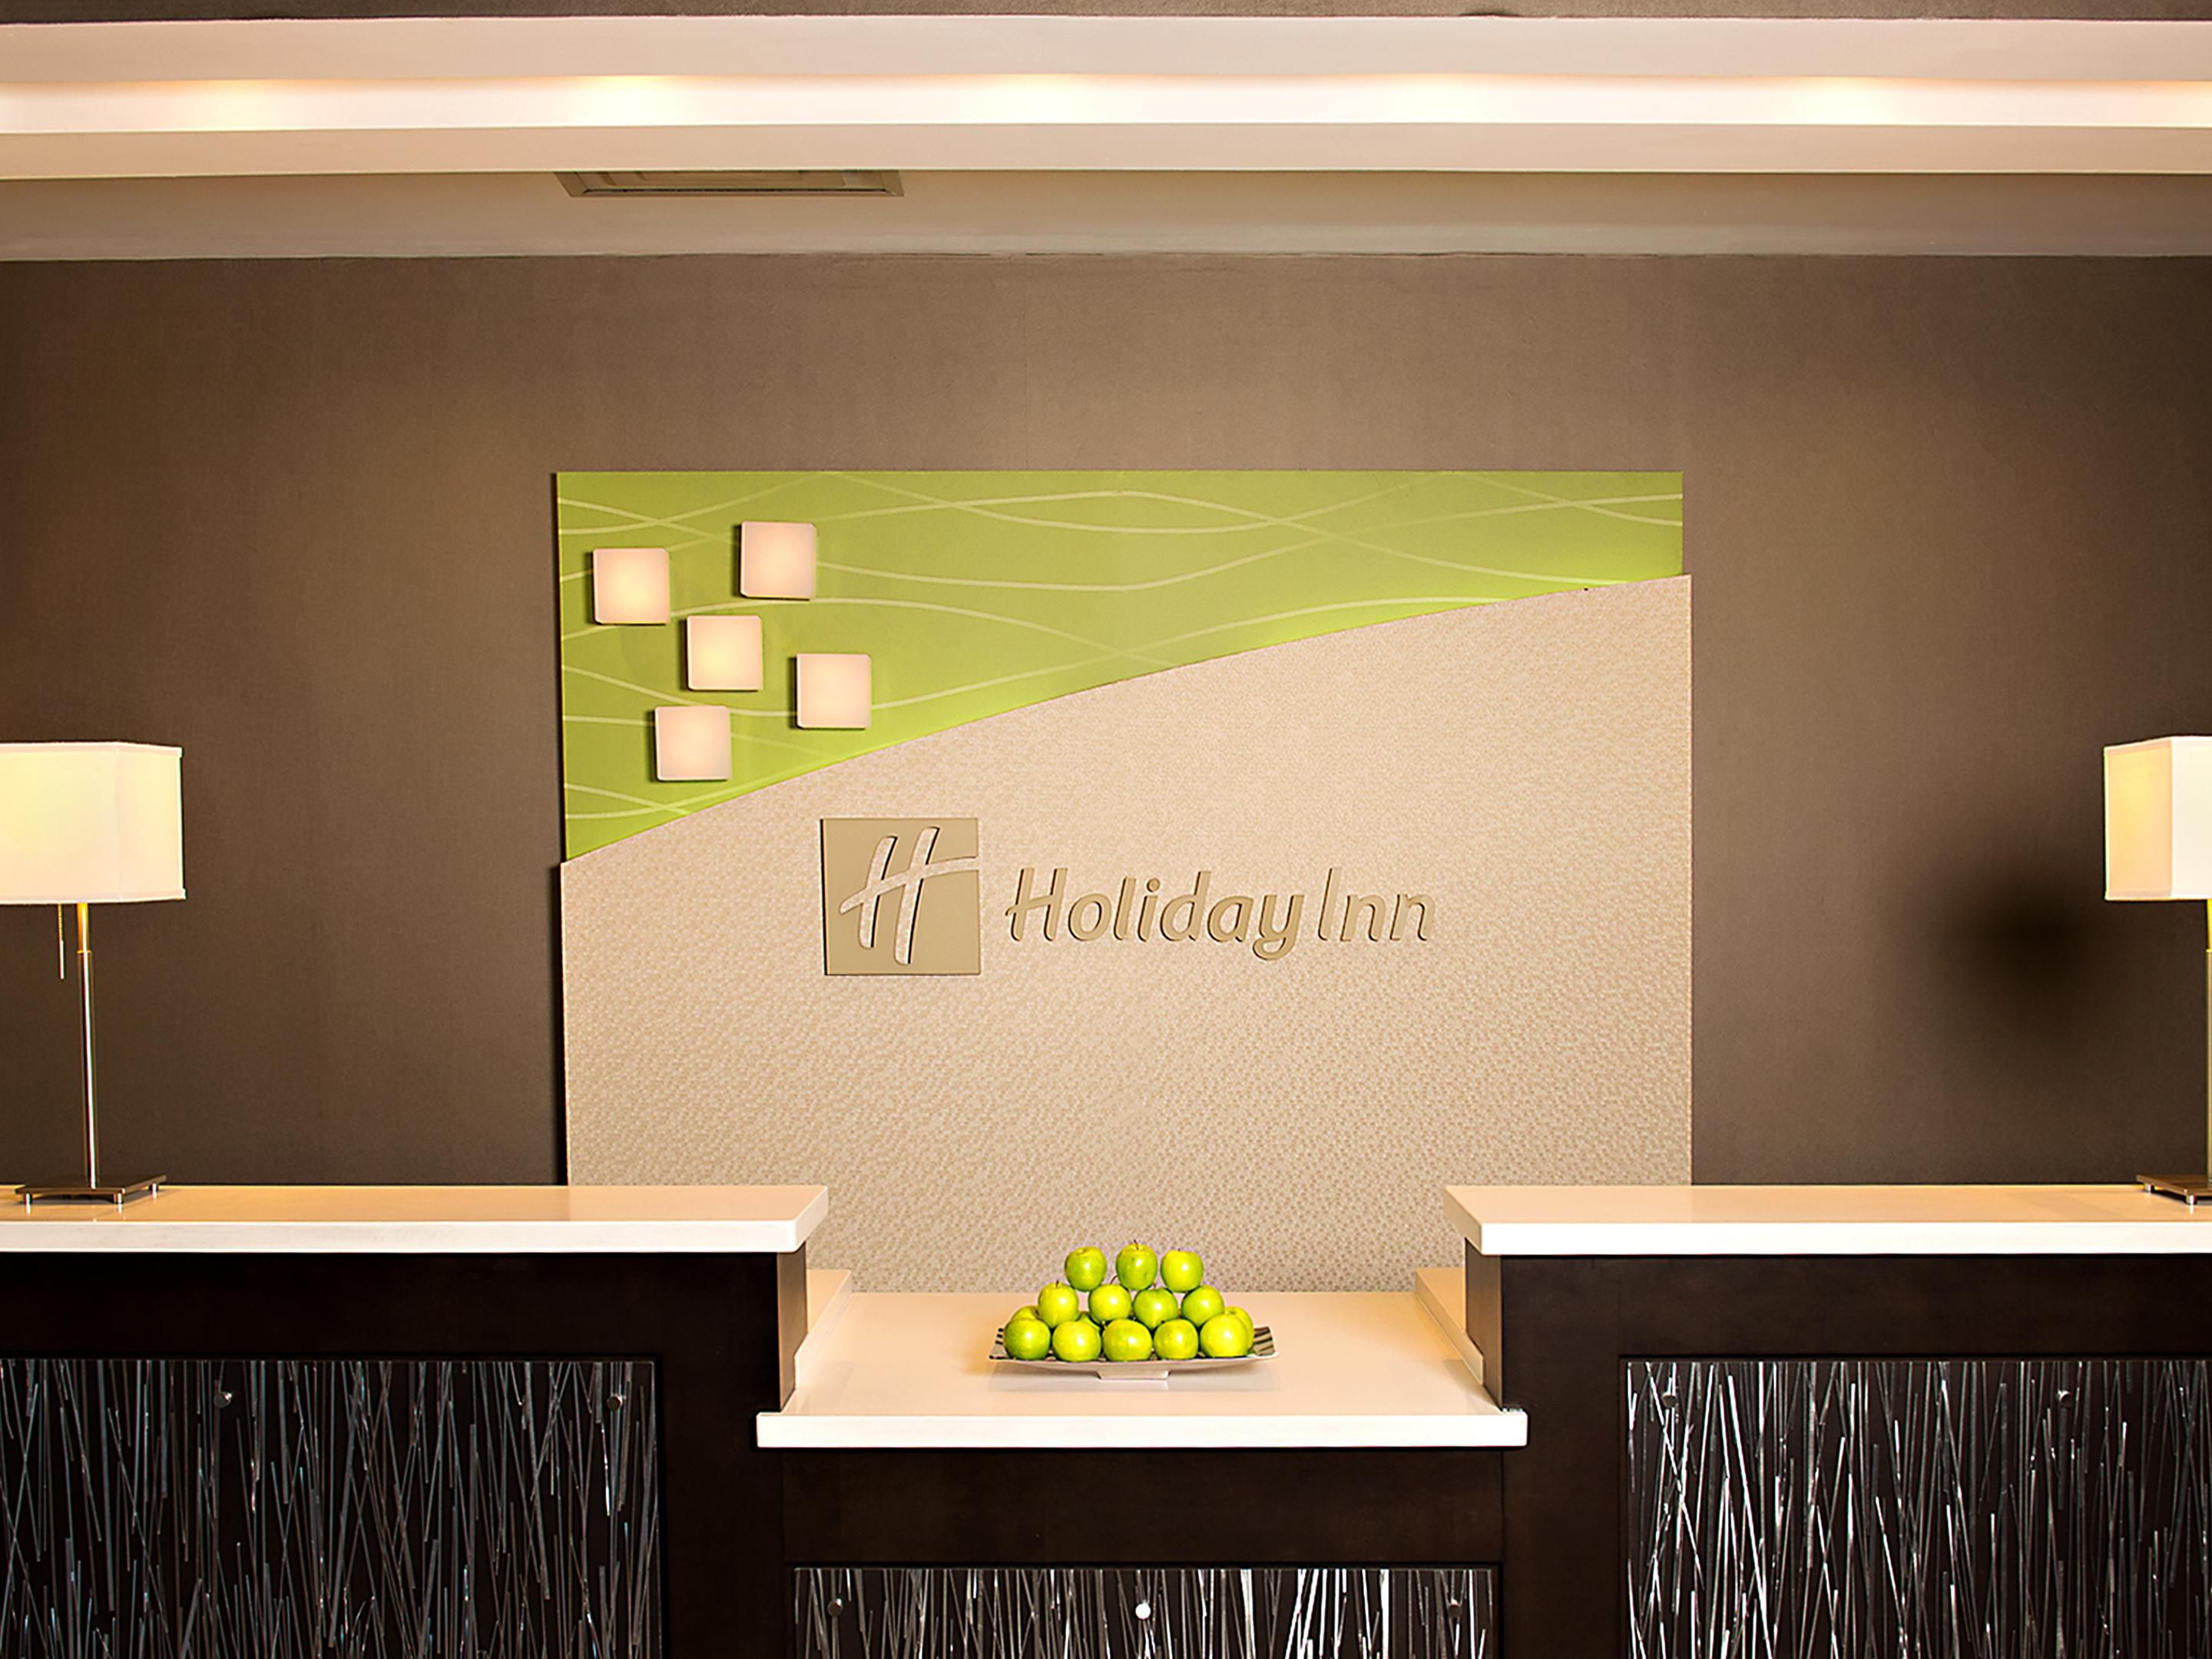 We await your arrival at the Holiday Inn & Suites Mississauga!